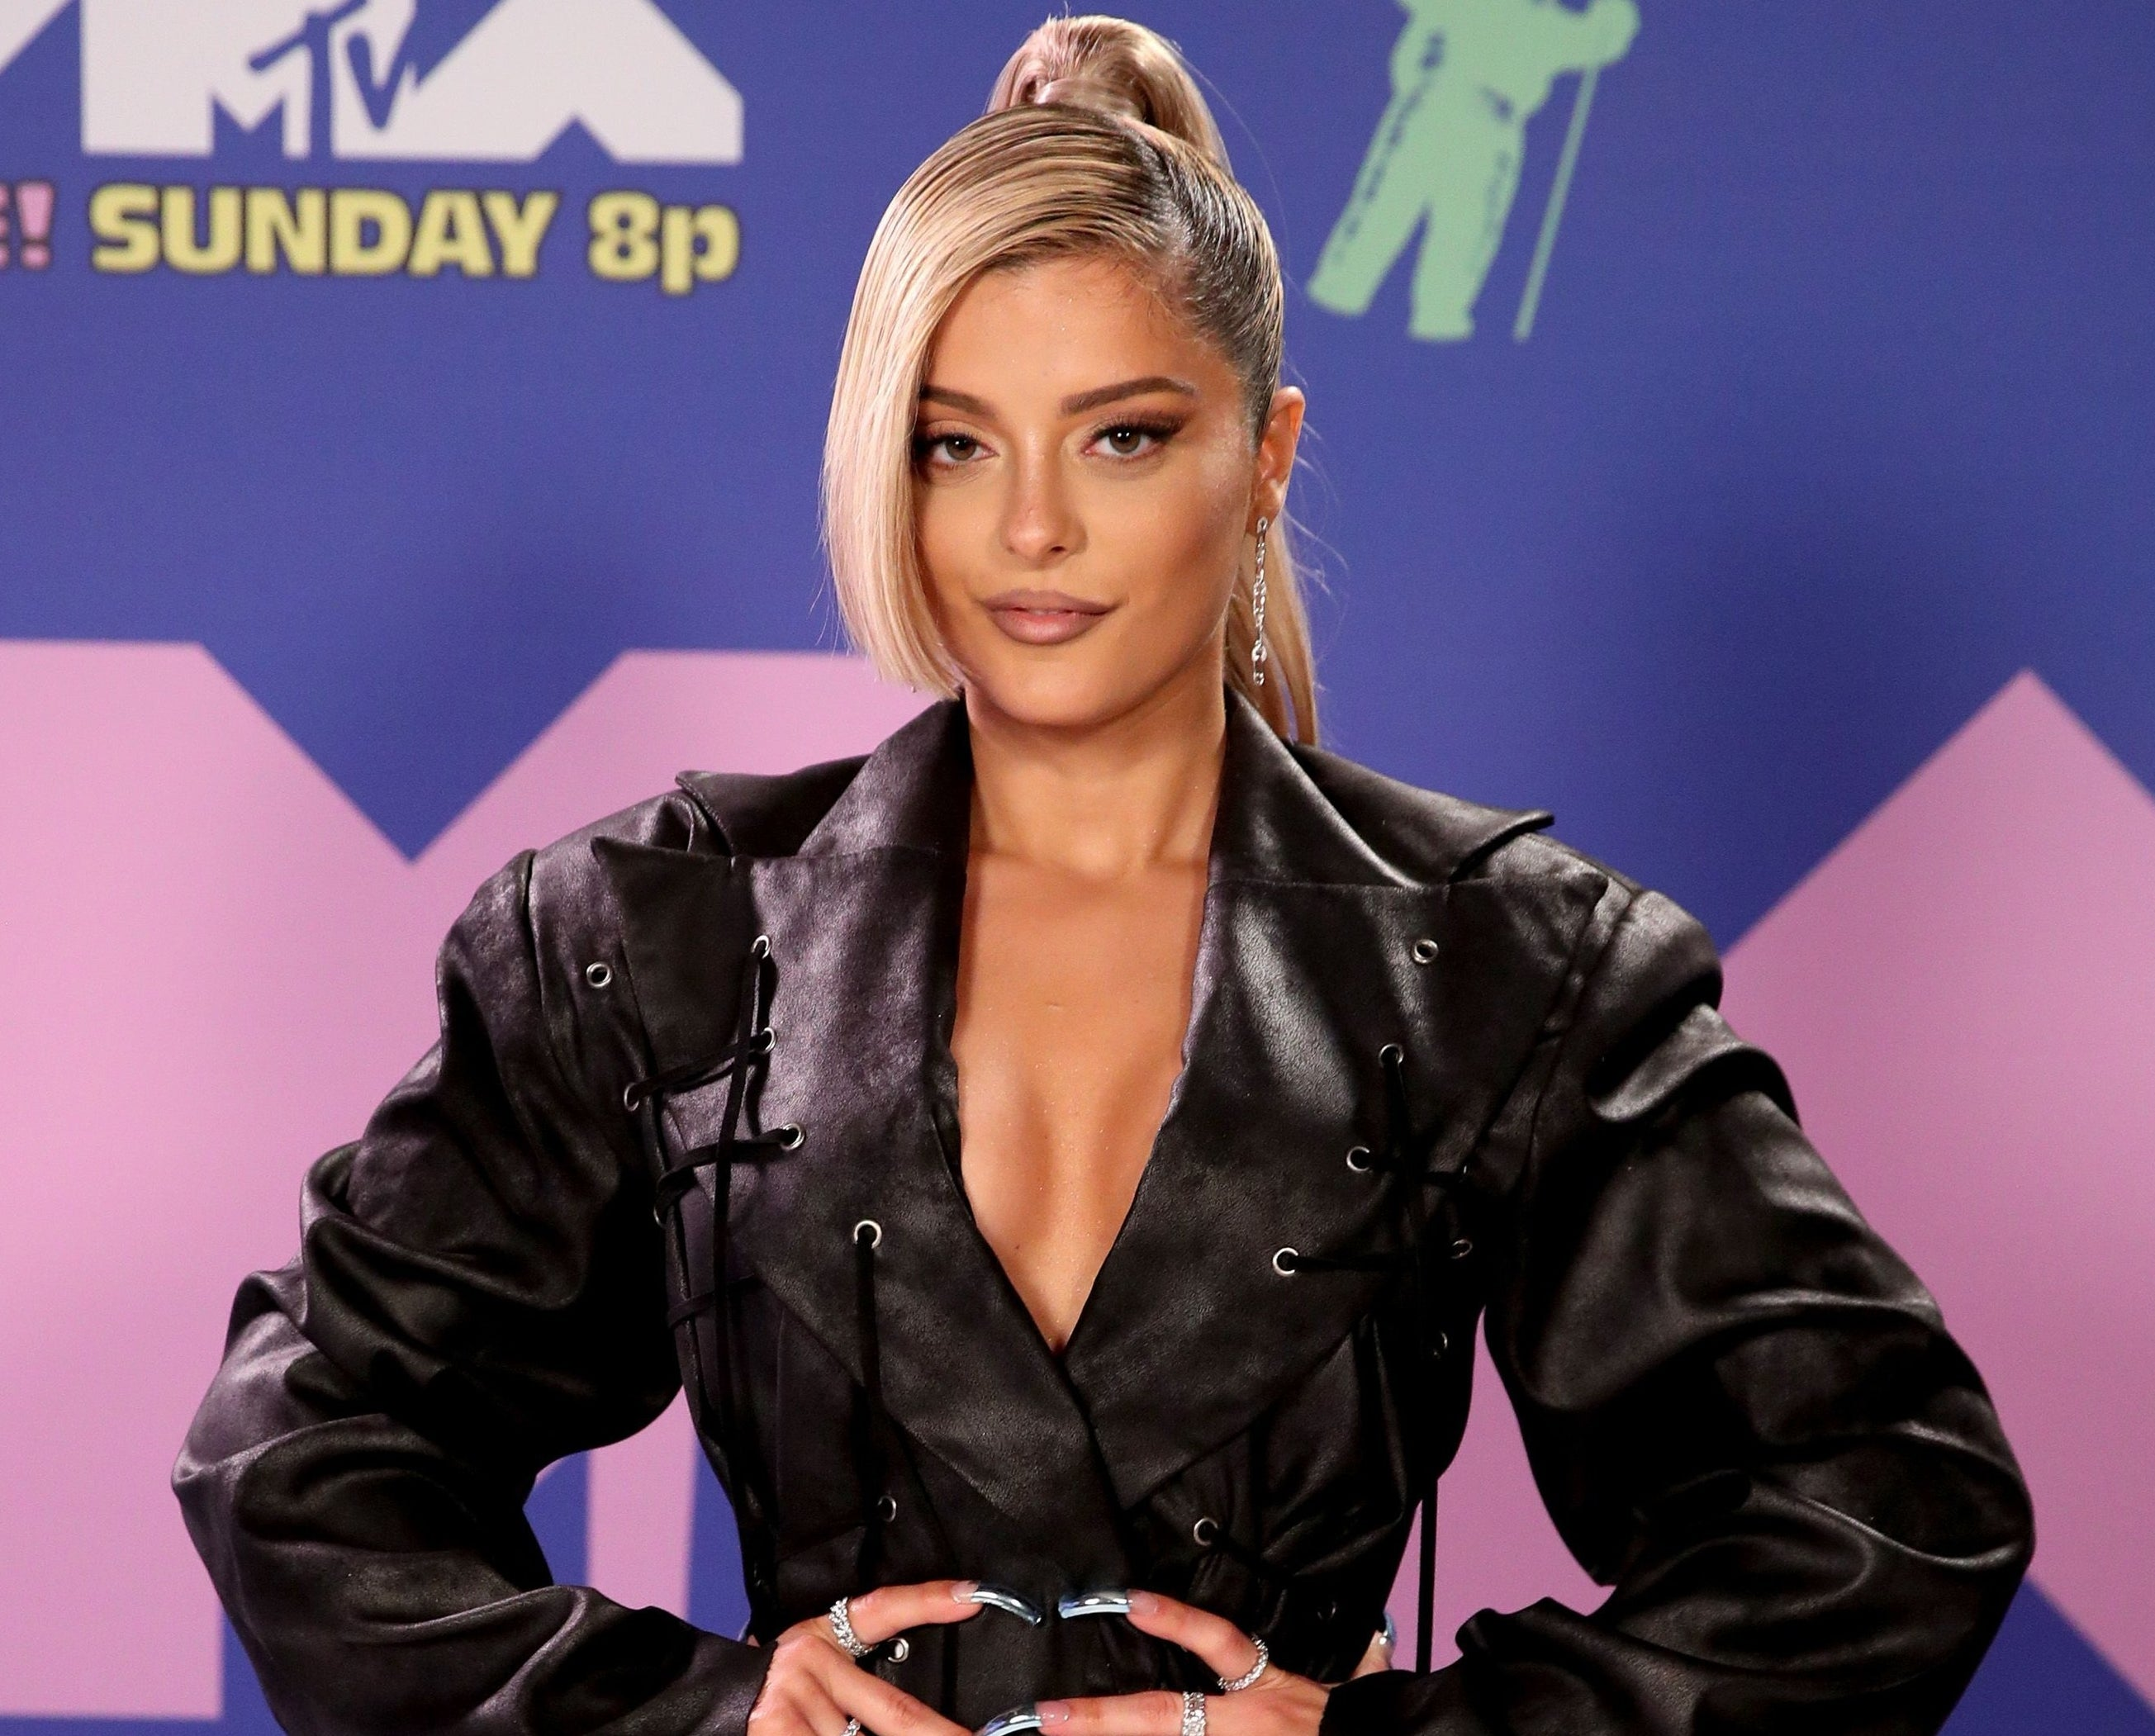 Bebe wears blonde hair in a ponytail with a leather dress at an event